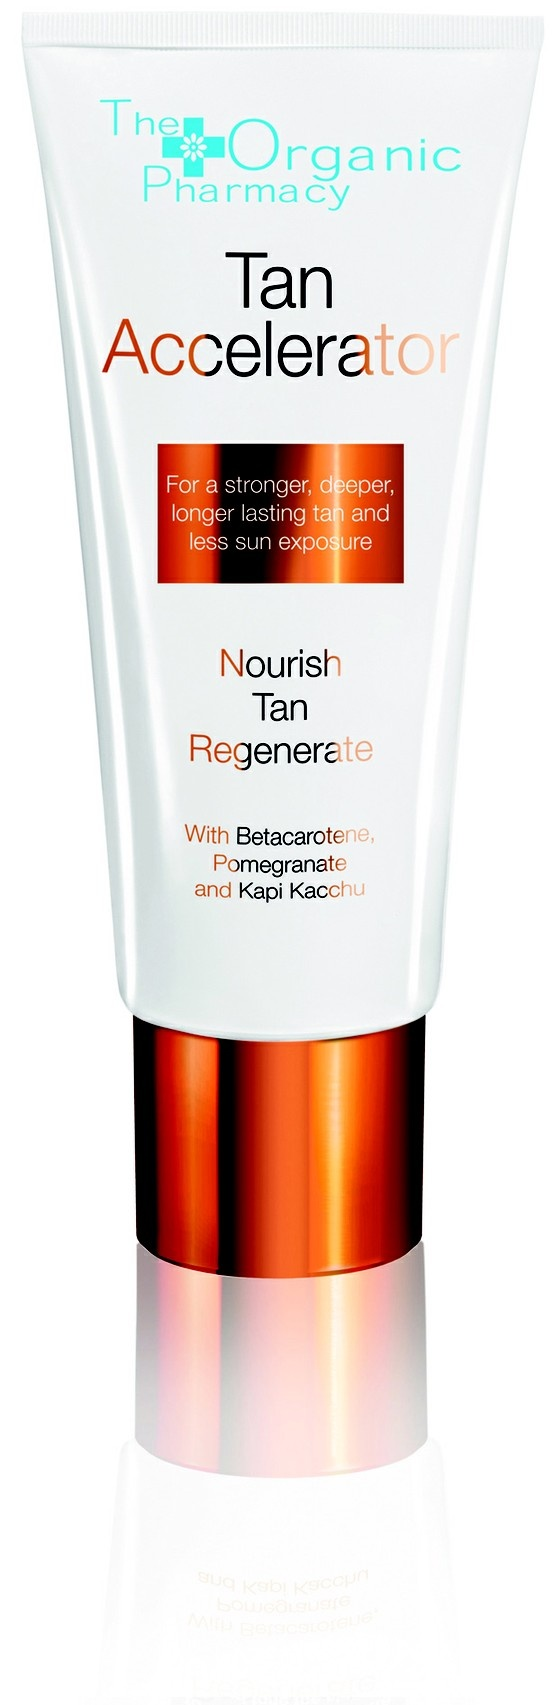 Develop a rich deep tan faster with Betacarotene and Kapi Kacchu extract with less sun exposure